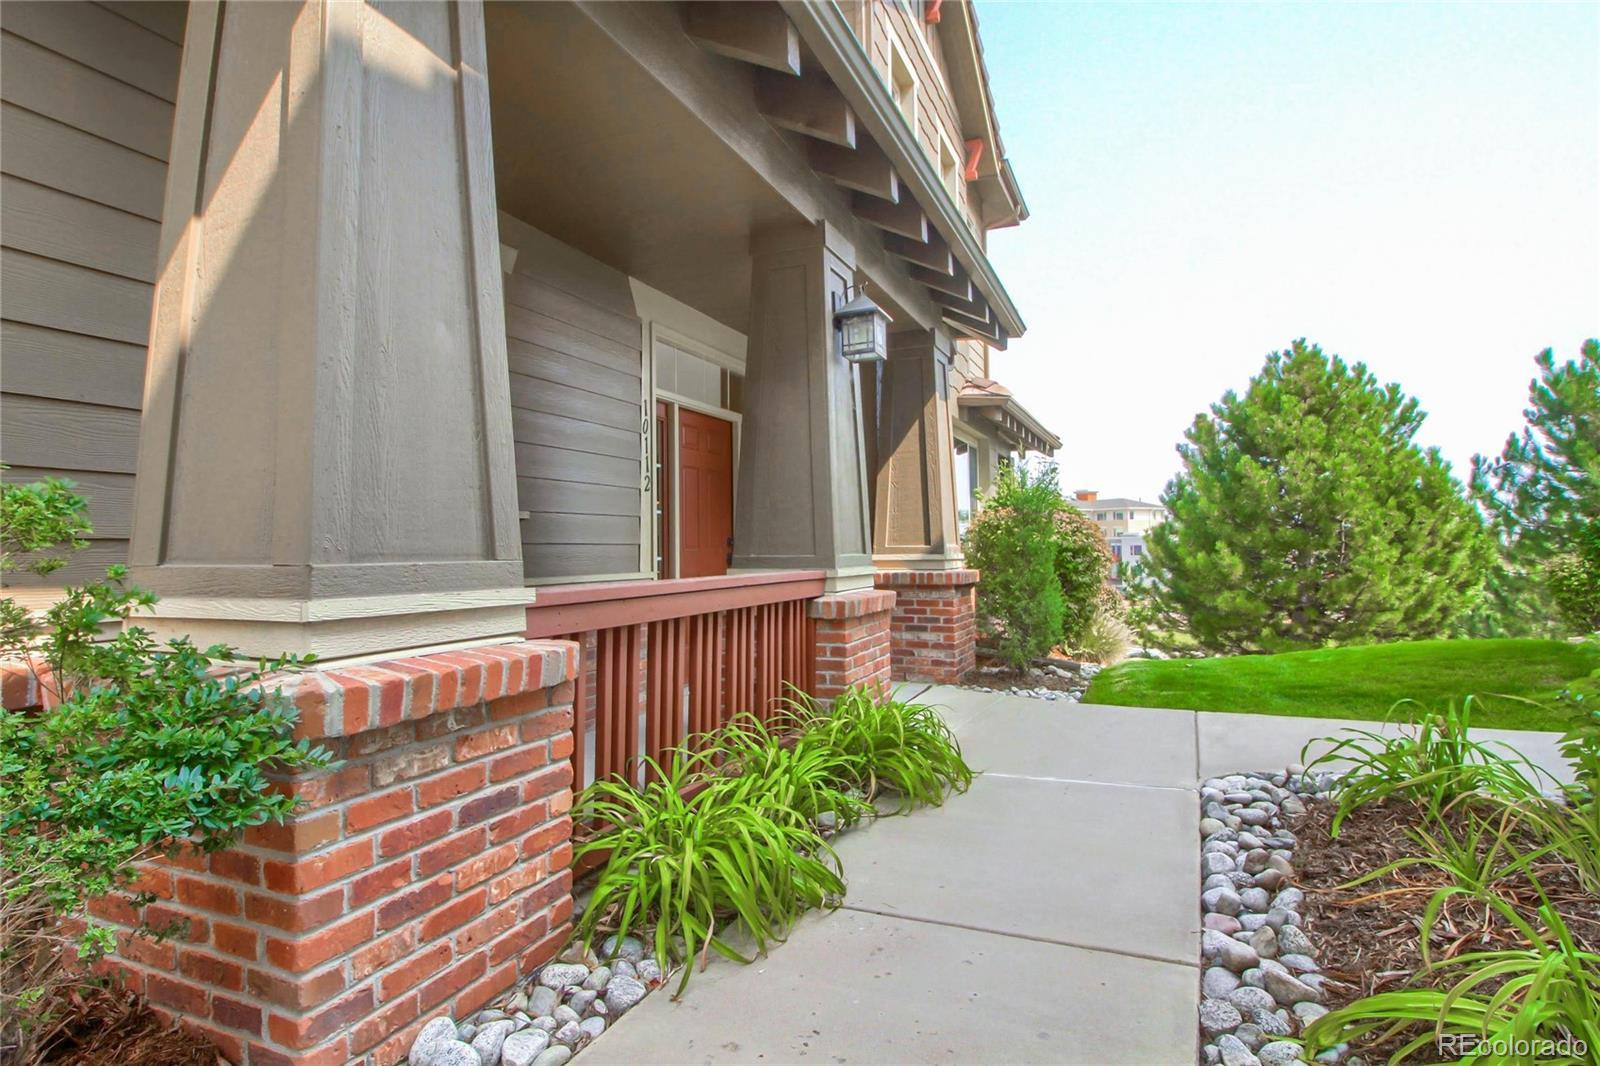 10112 Bluffmont Lane, Lone Tree, CO 80124 - #: 5165704